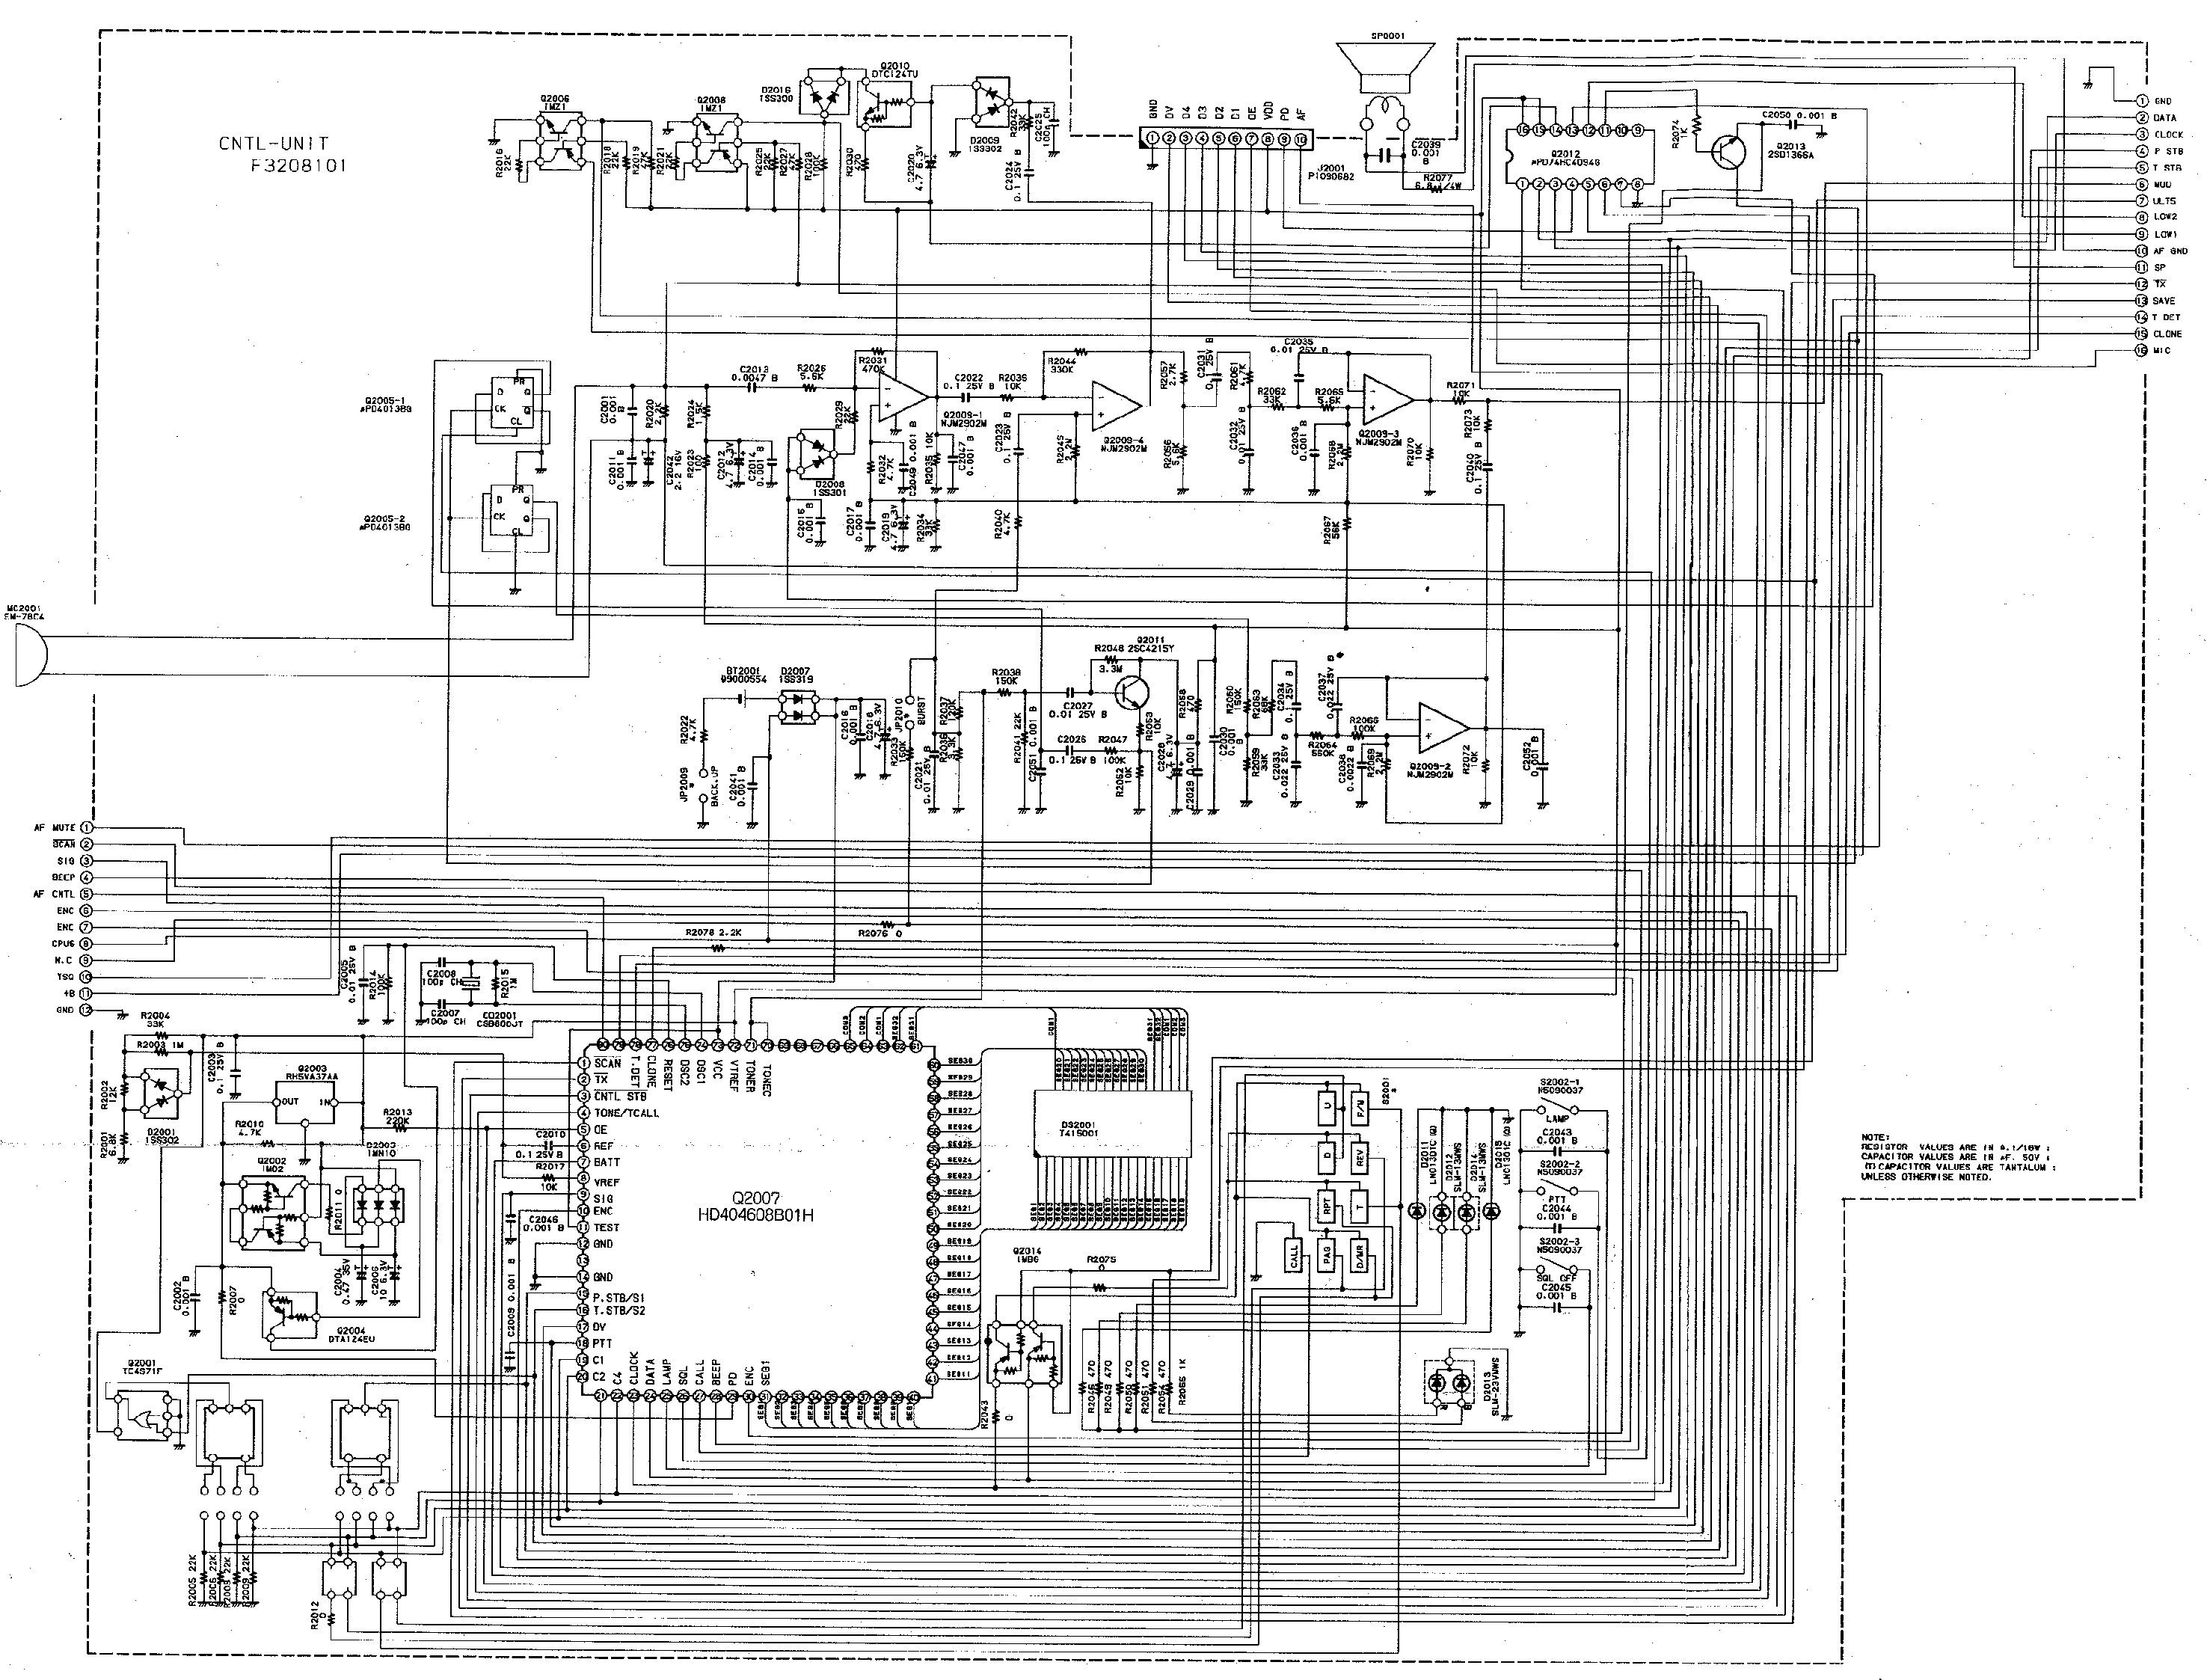 Unique Nikkai Car Stereo Wiring Diagram Diagramsample